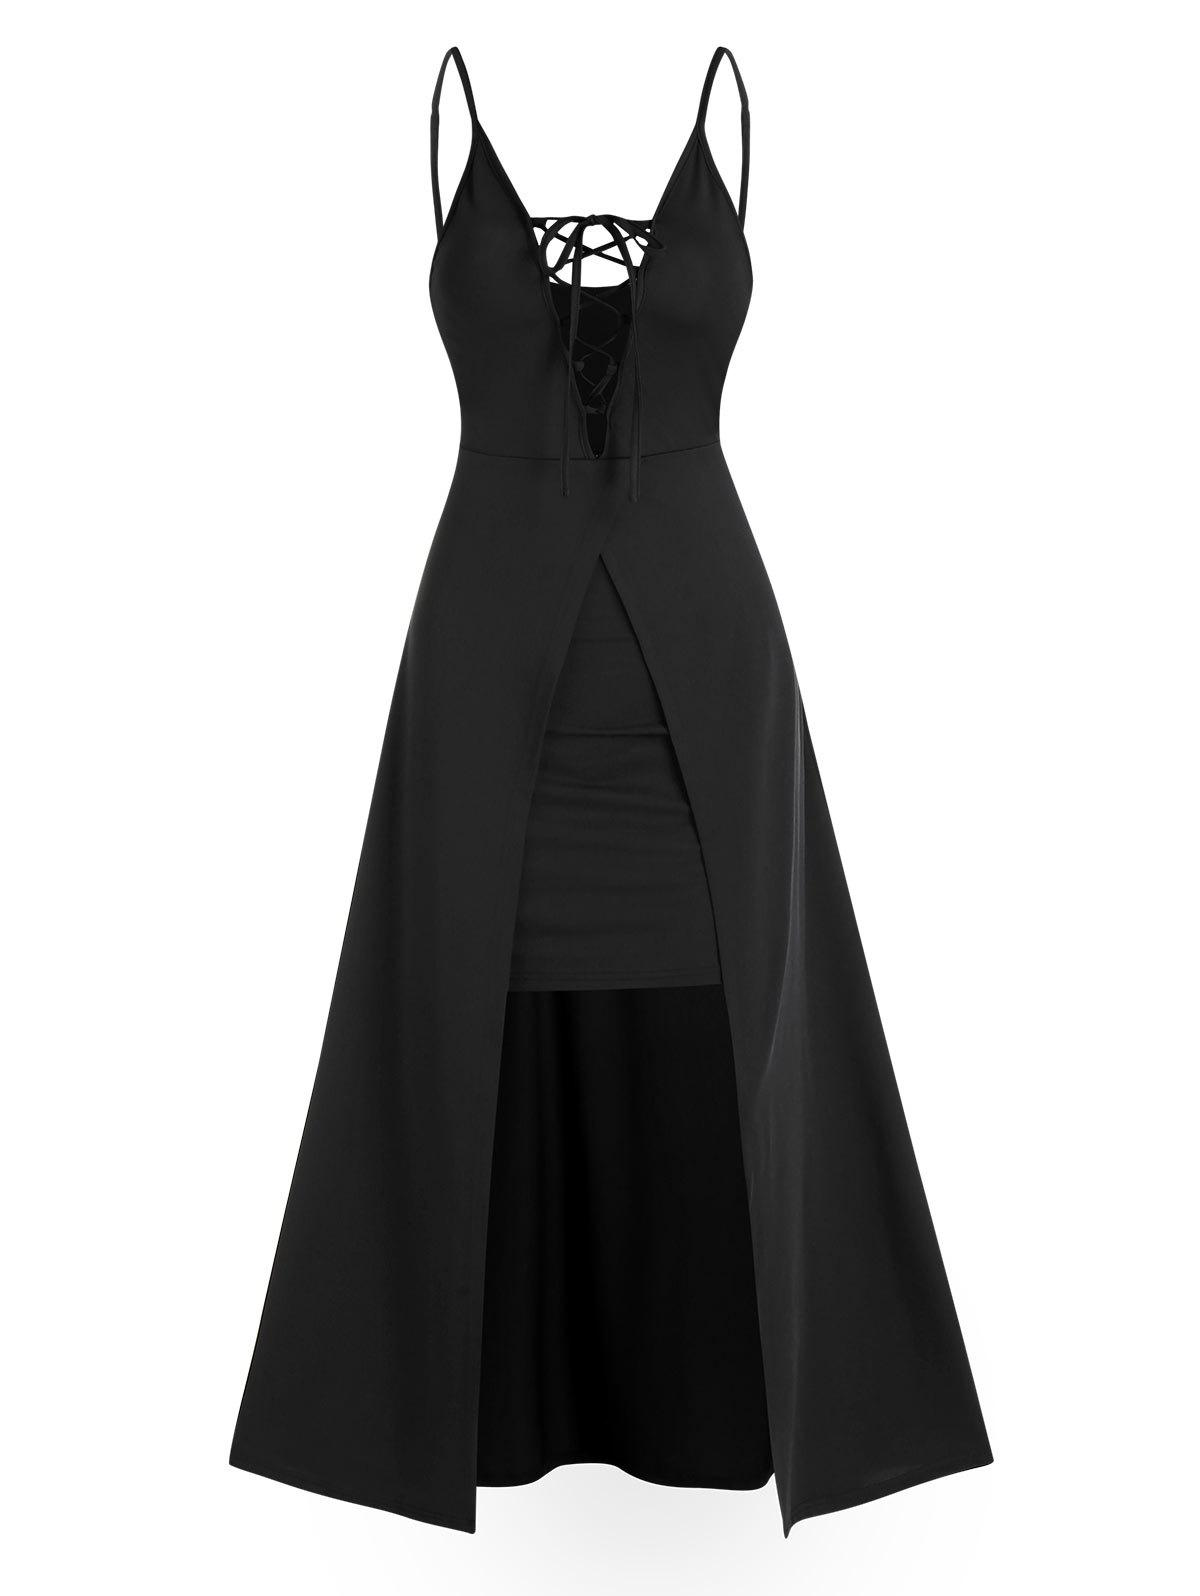 Spaghetti Strap Lace-up Slit Front Prom Dress - BLACK 3XL